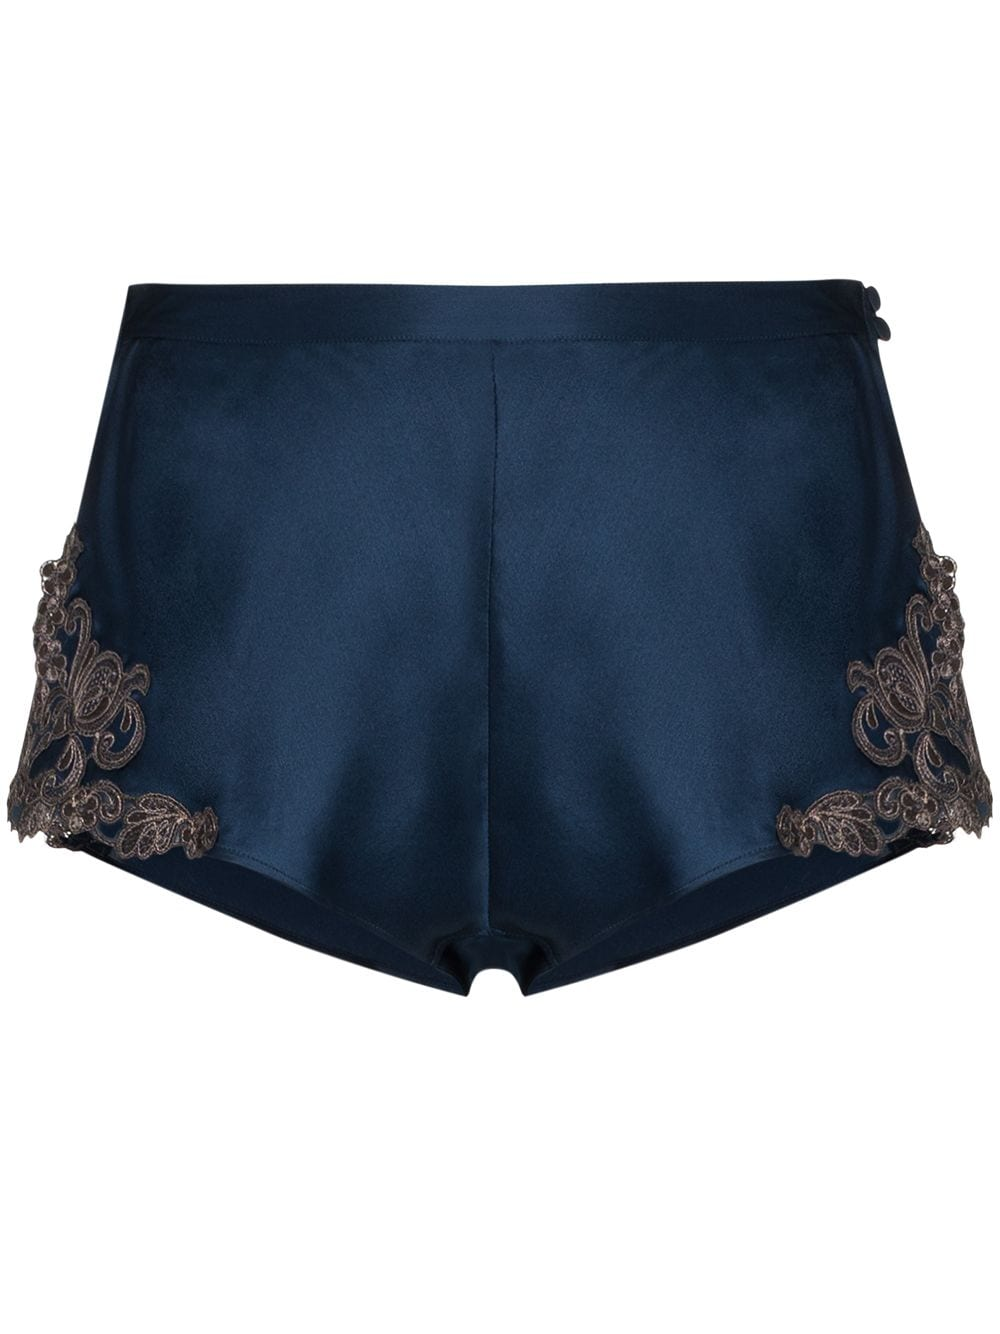 Maison Silk French Knickers